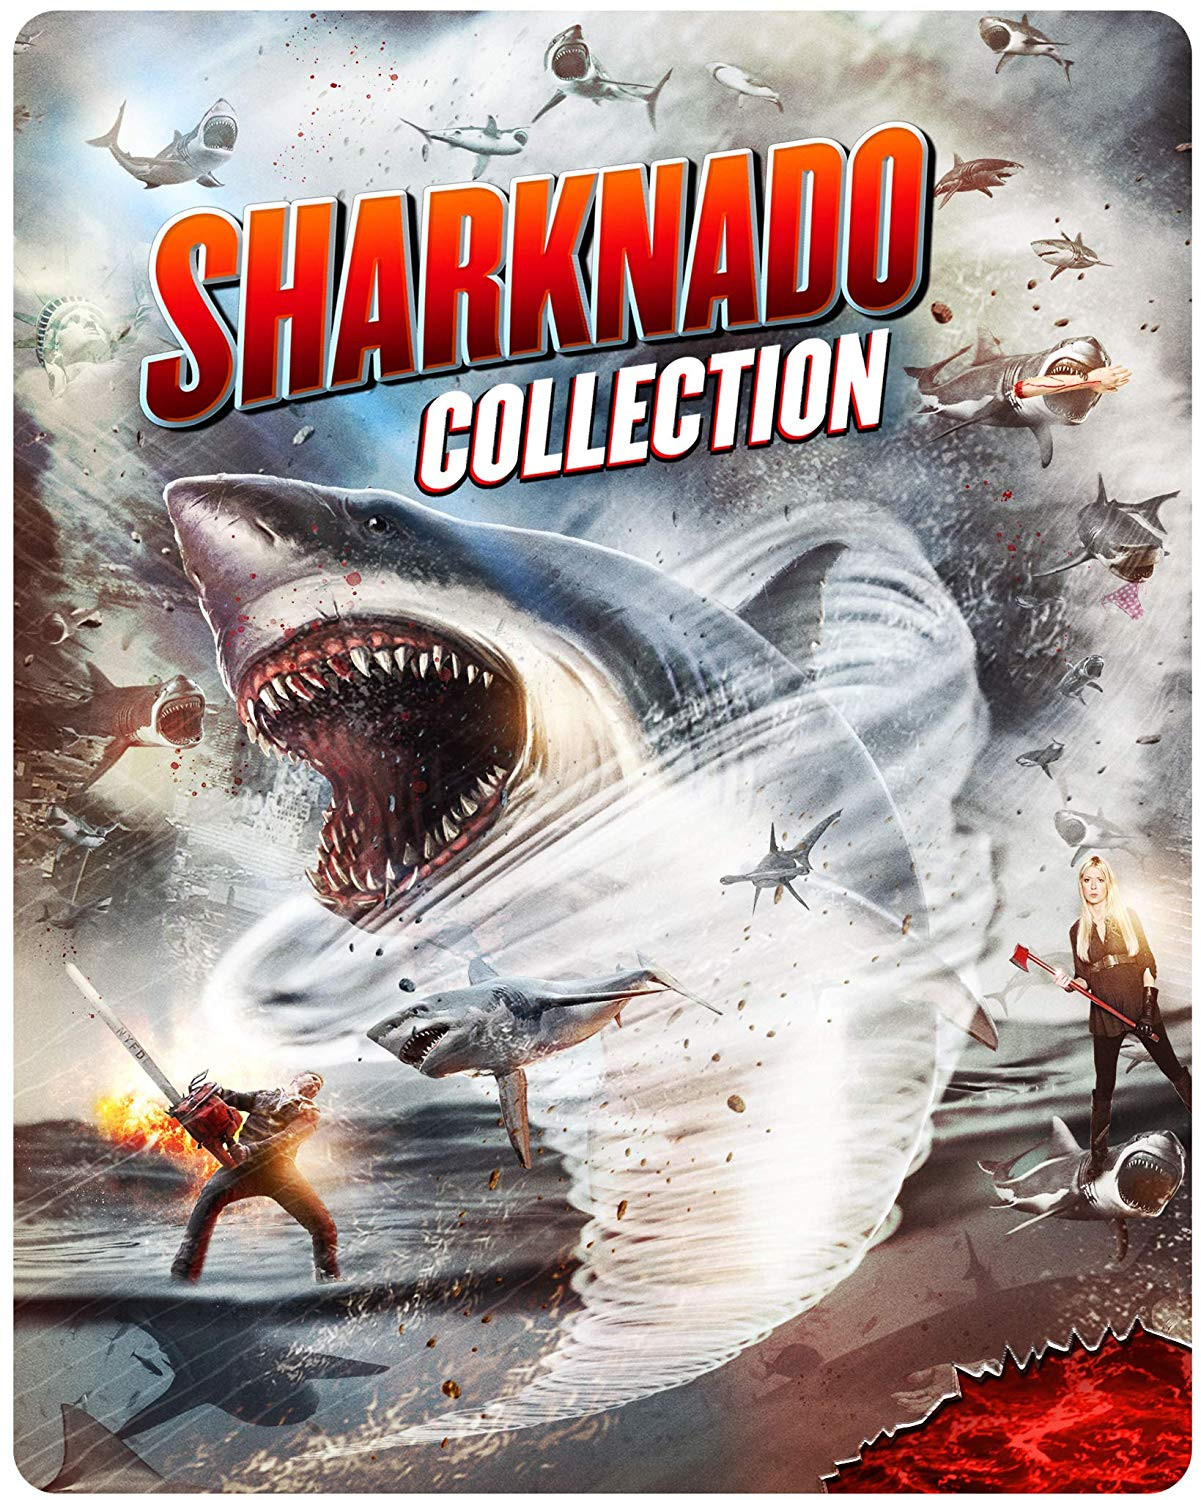 Sharknado [Movie] - Sharknado 1-6 Complete Collection [Limited Edition Steelbook]